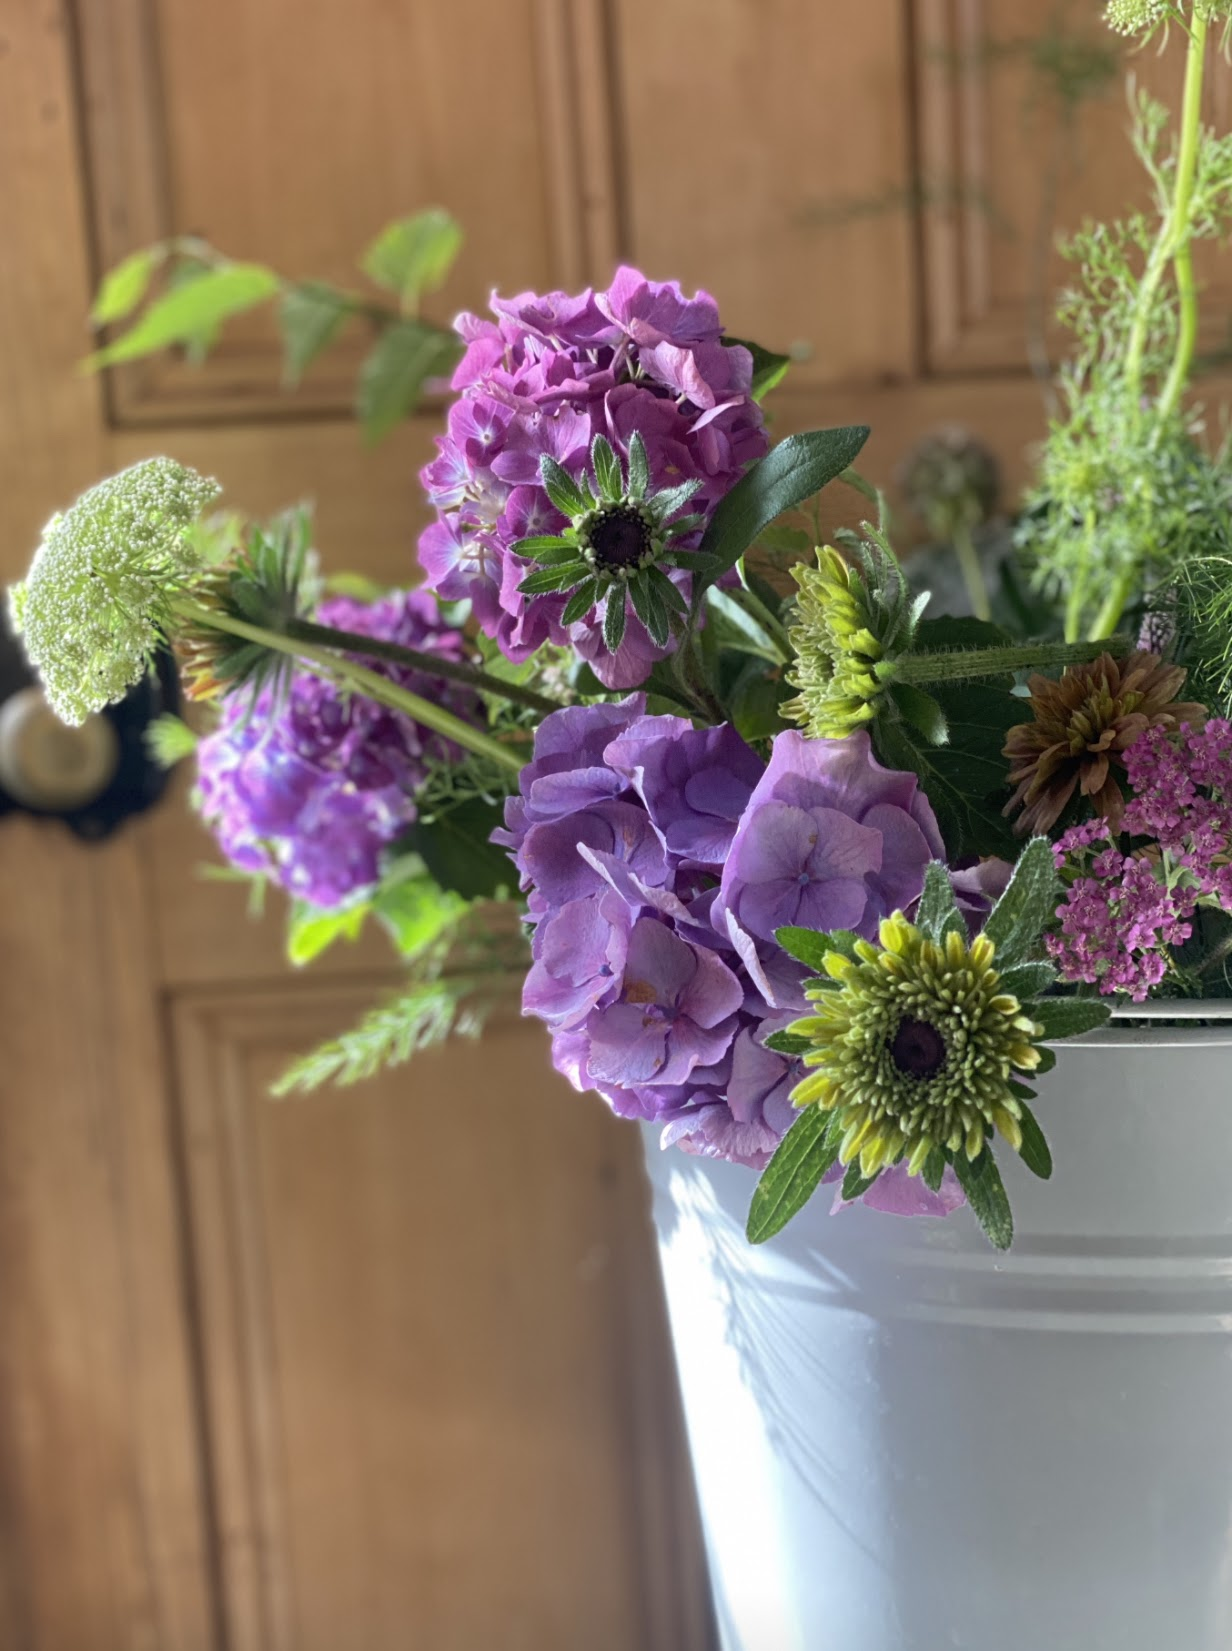 September flowers from the cutting patch